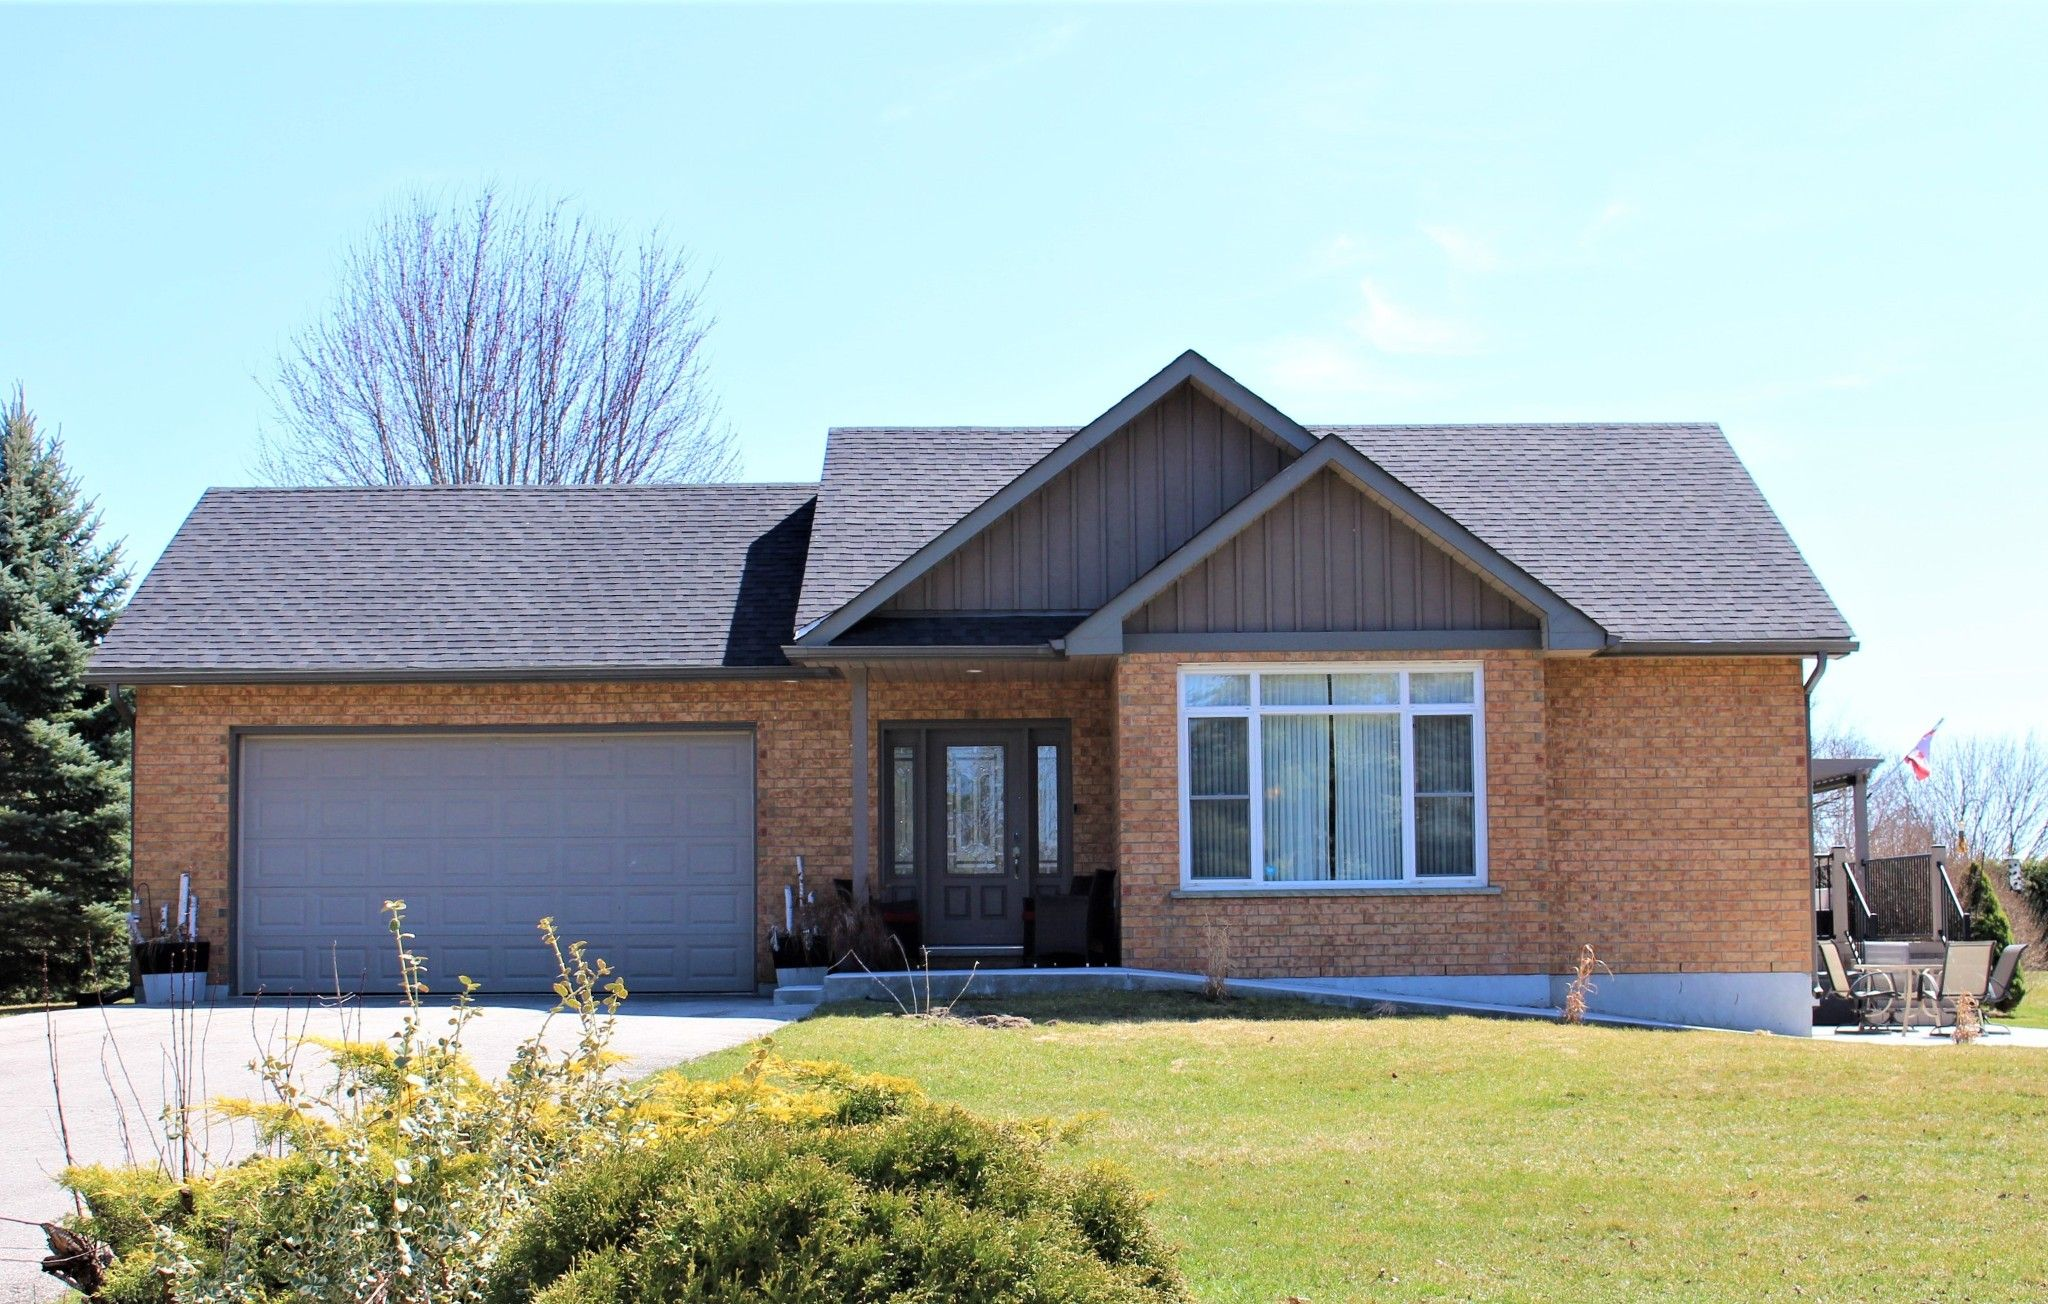 Main Photo: 8425 E Trotters Lane in Cobourg: House for sale : MLS®# X5186868